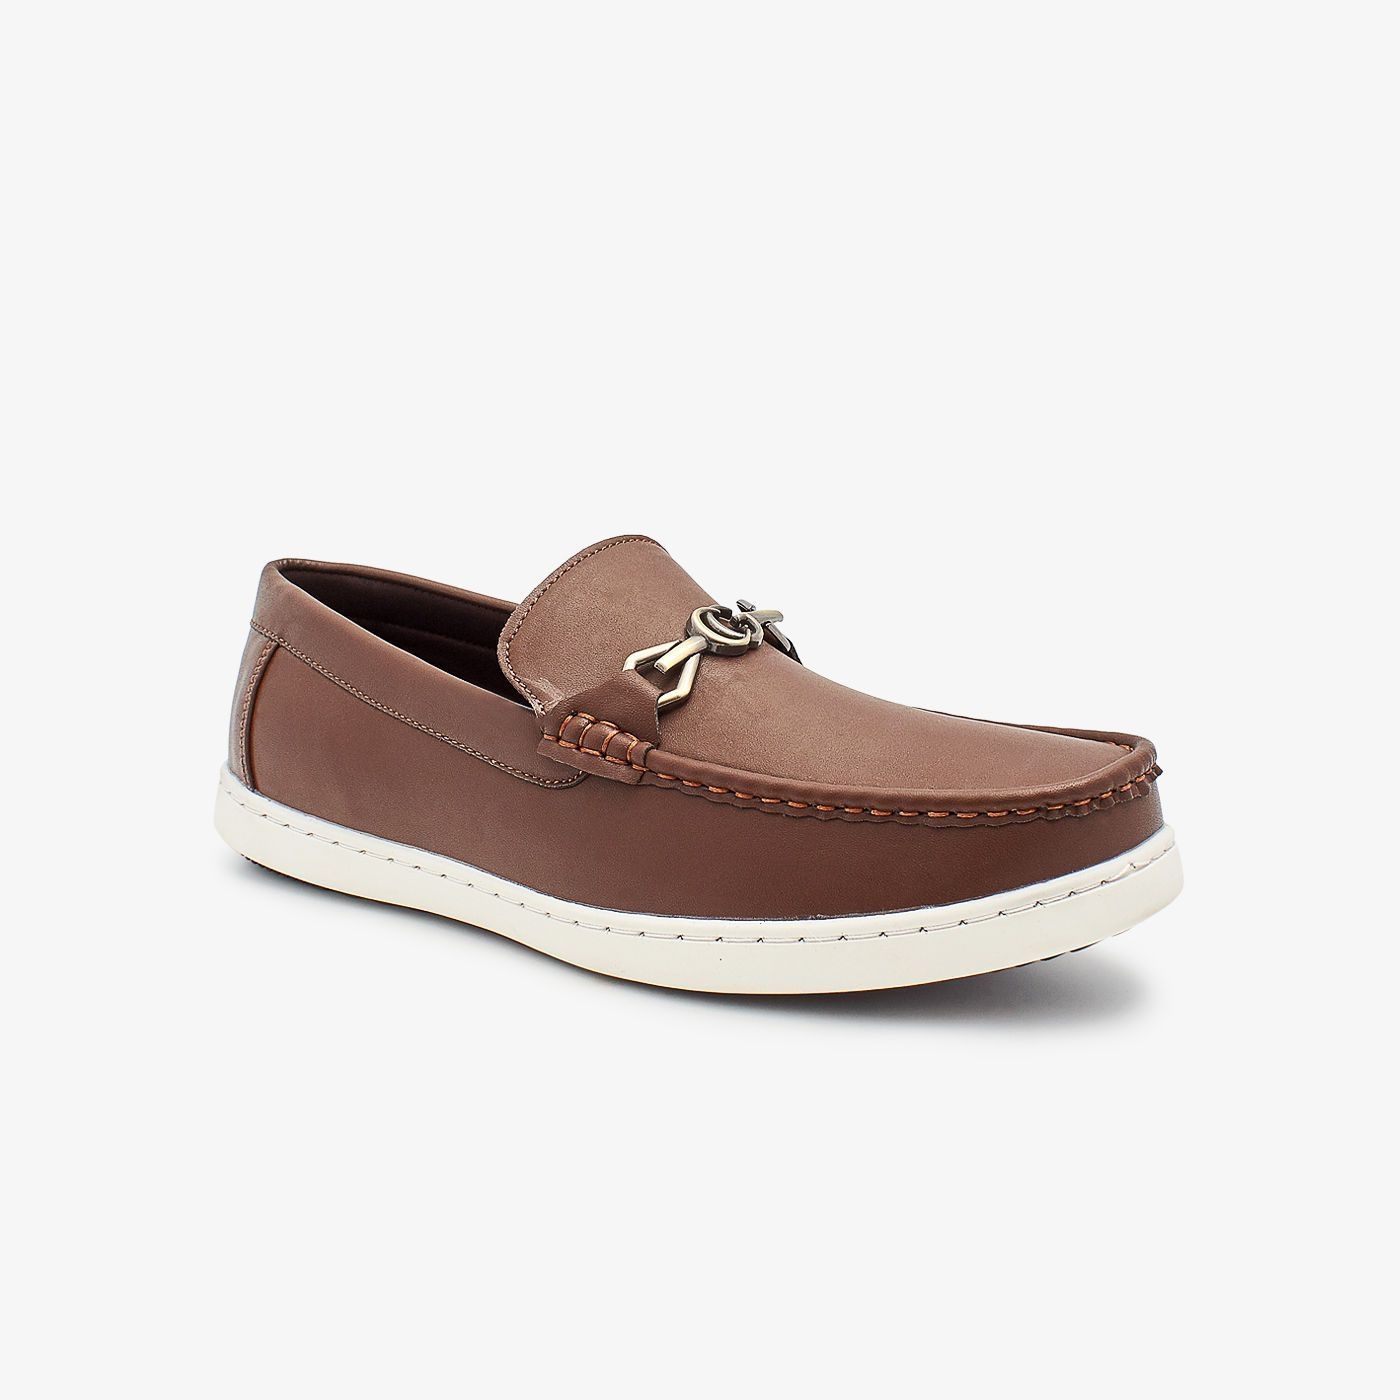 Mens Buckled Loafers